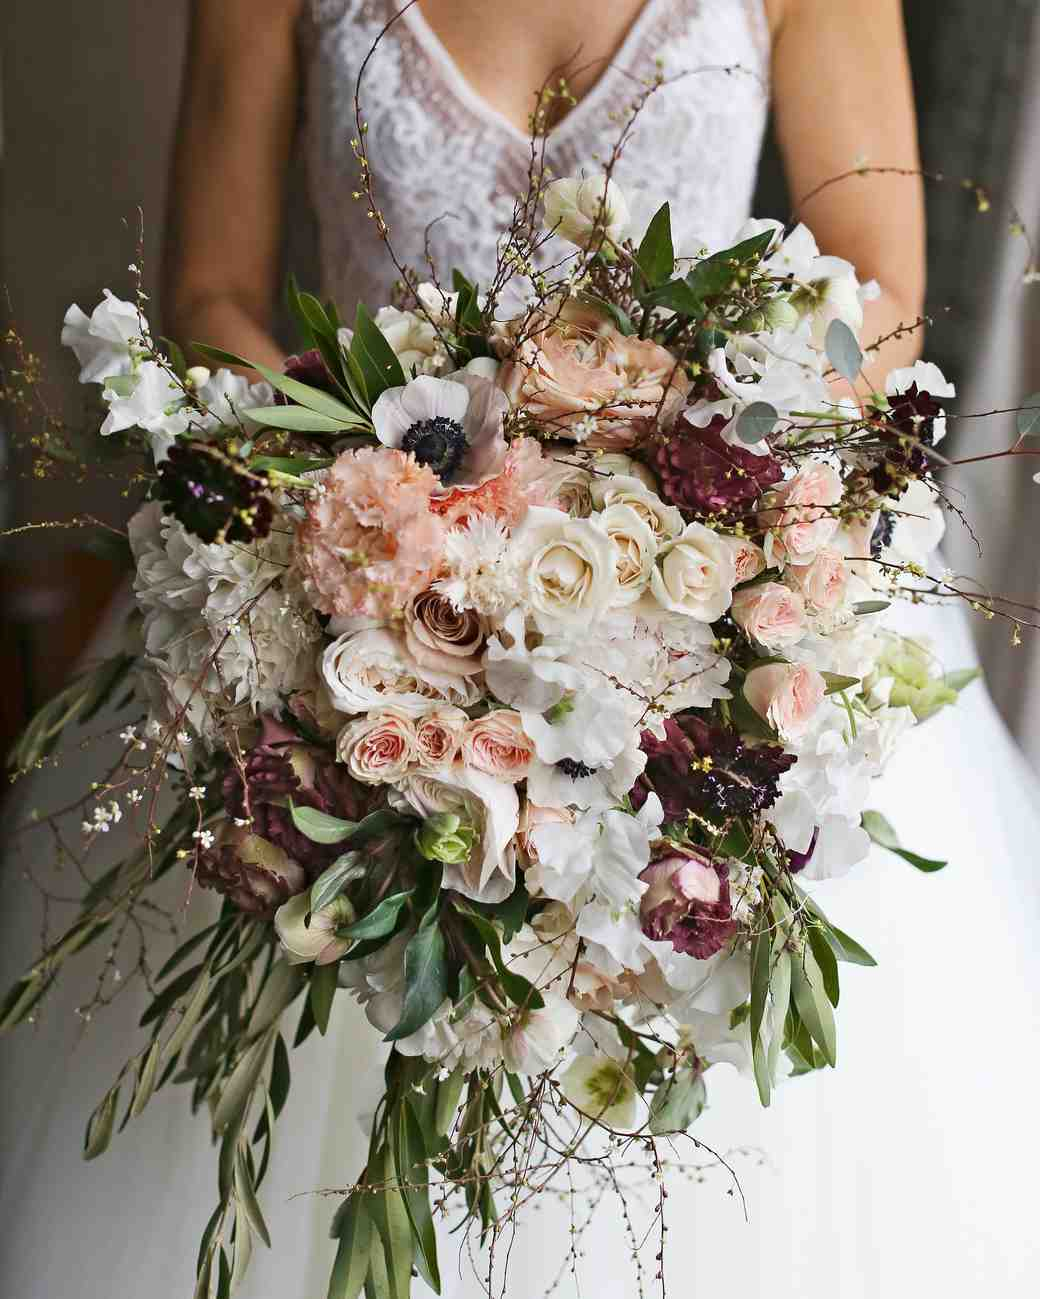 Flower Wedding Bouquet: 32 Chic Cascading Wedding Bouquets